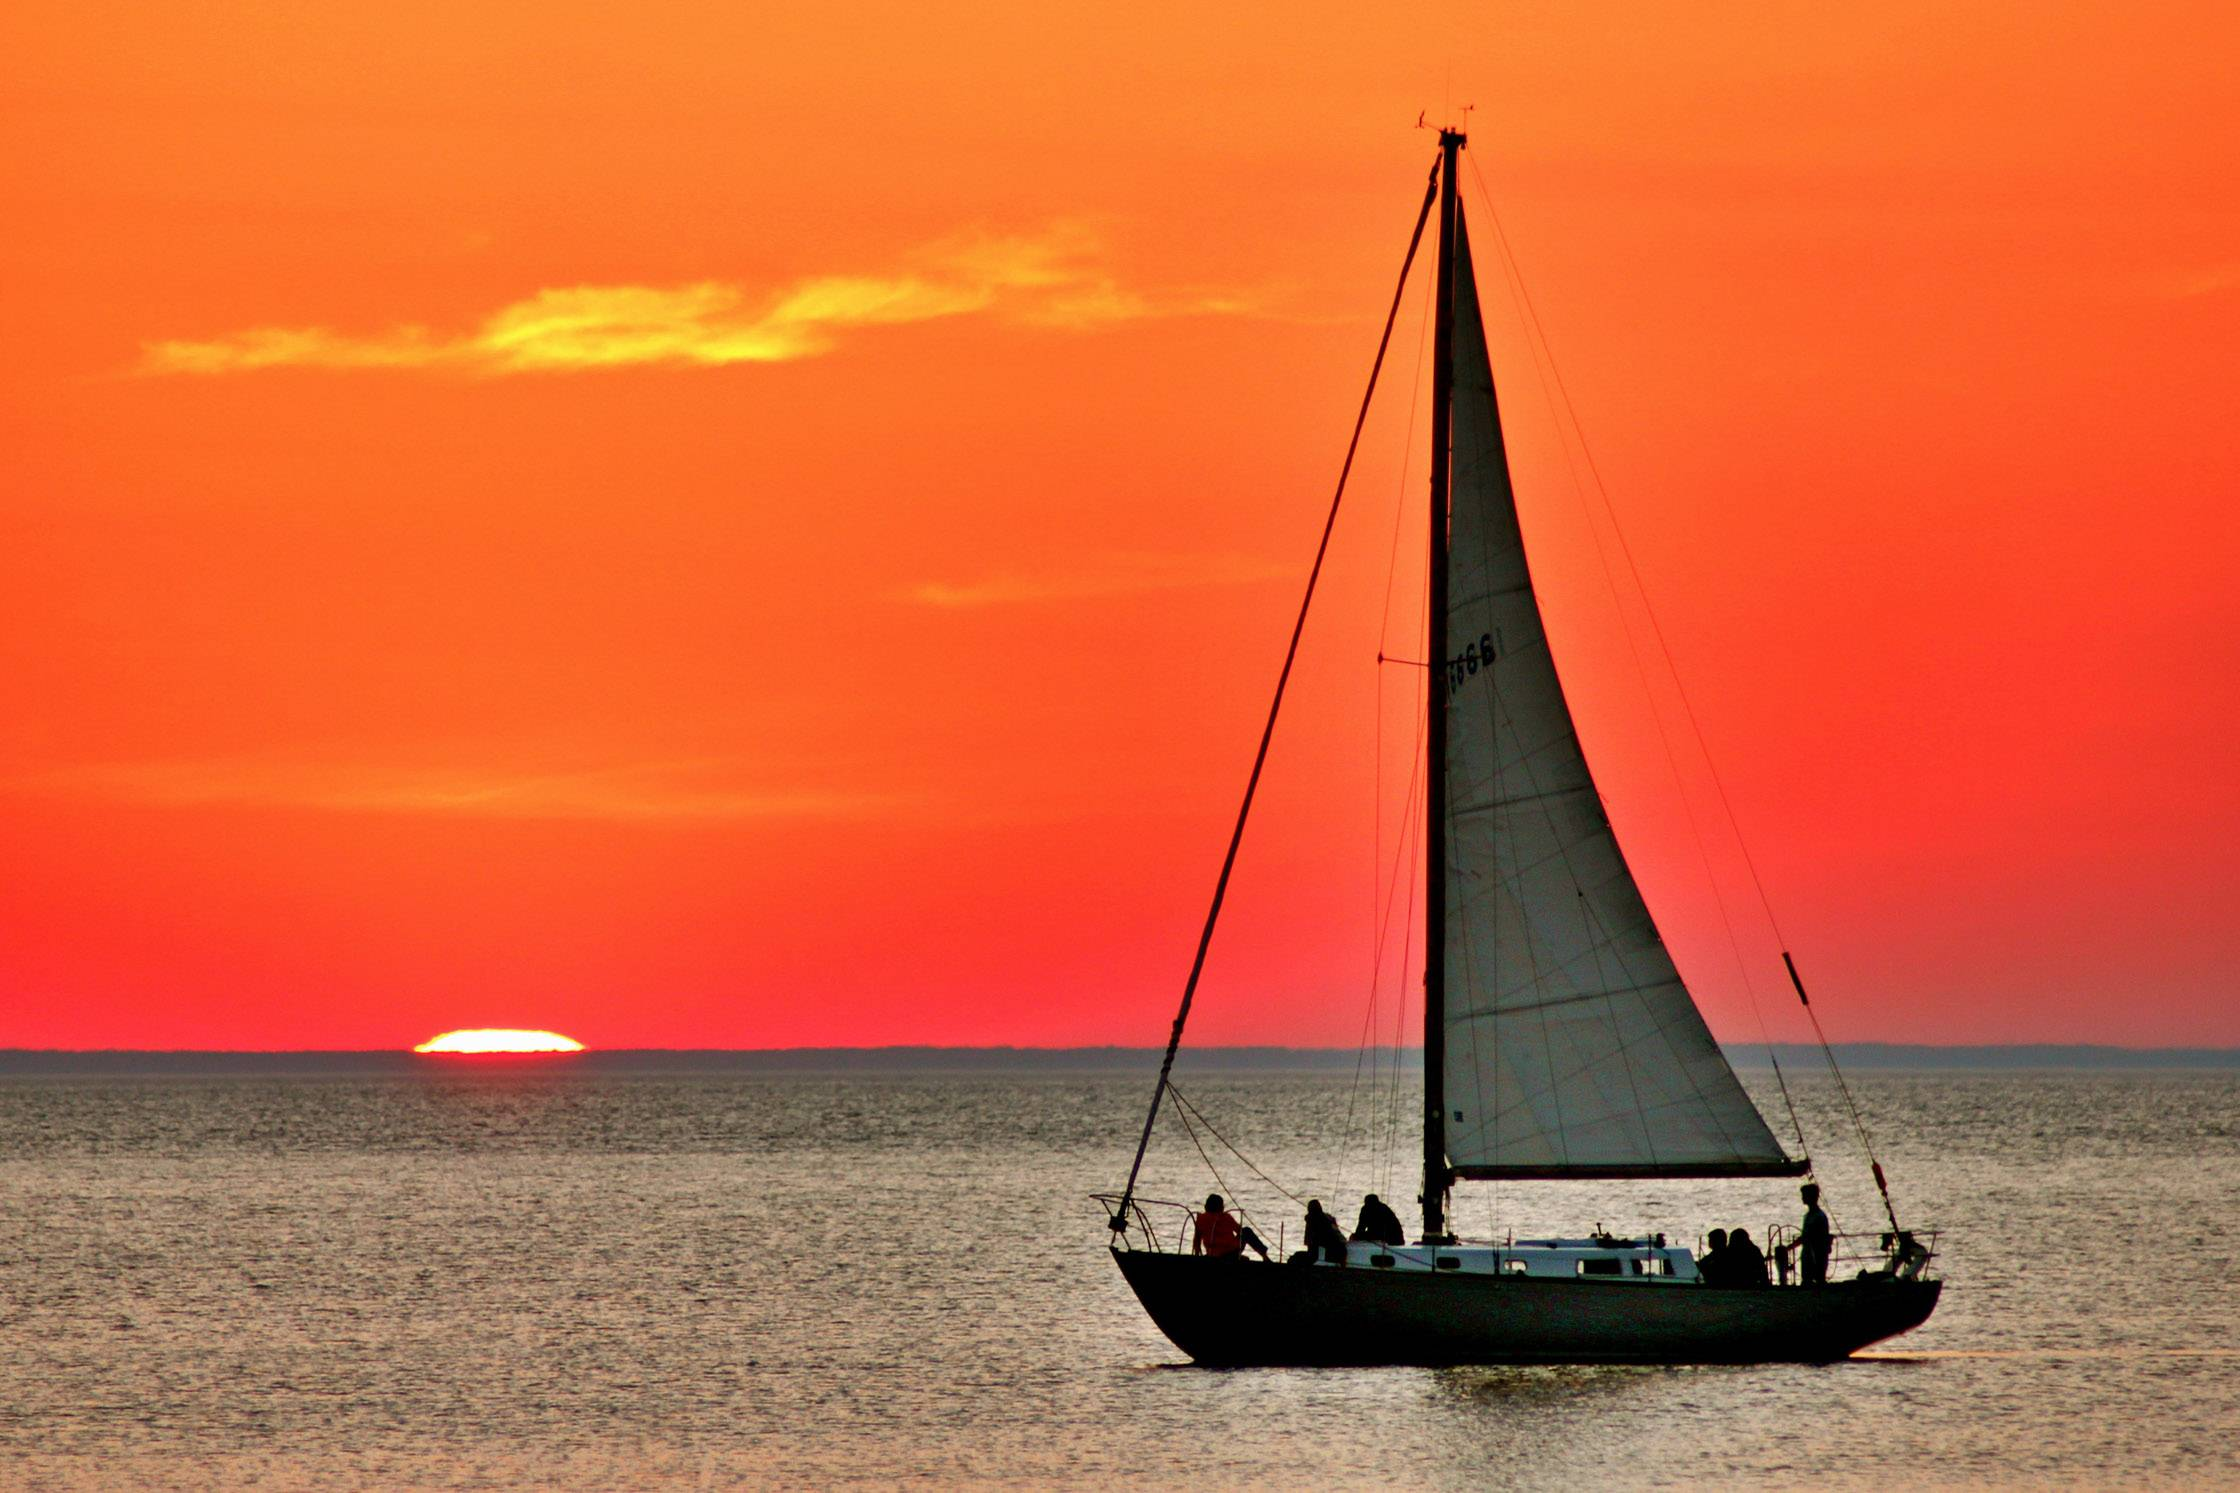 A red sky glows around a sailboat in Sister Bay, Wisconsin on June 9th, 2012 at 8:47 p.m.